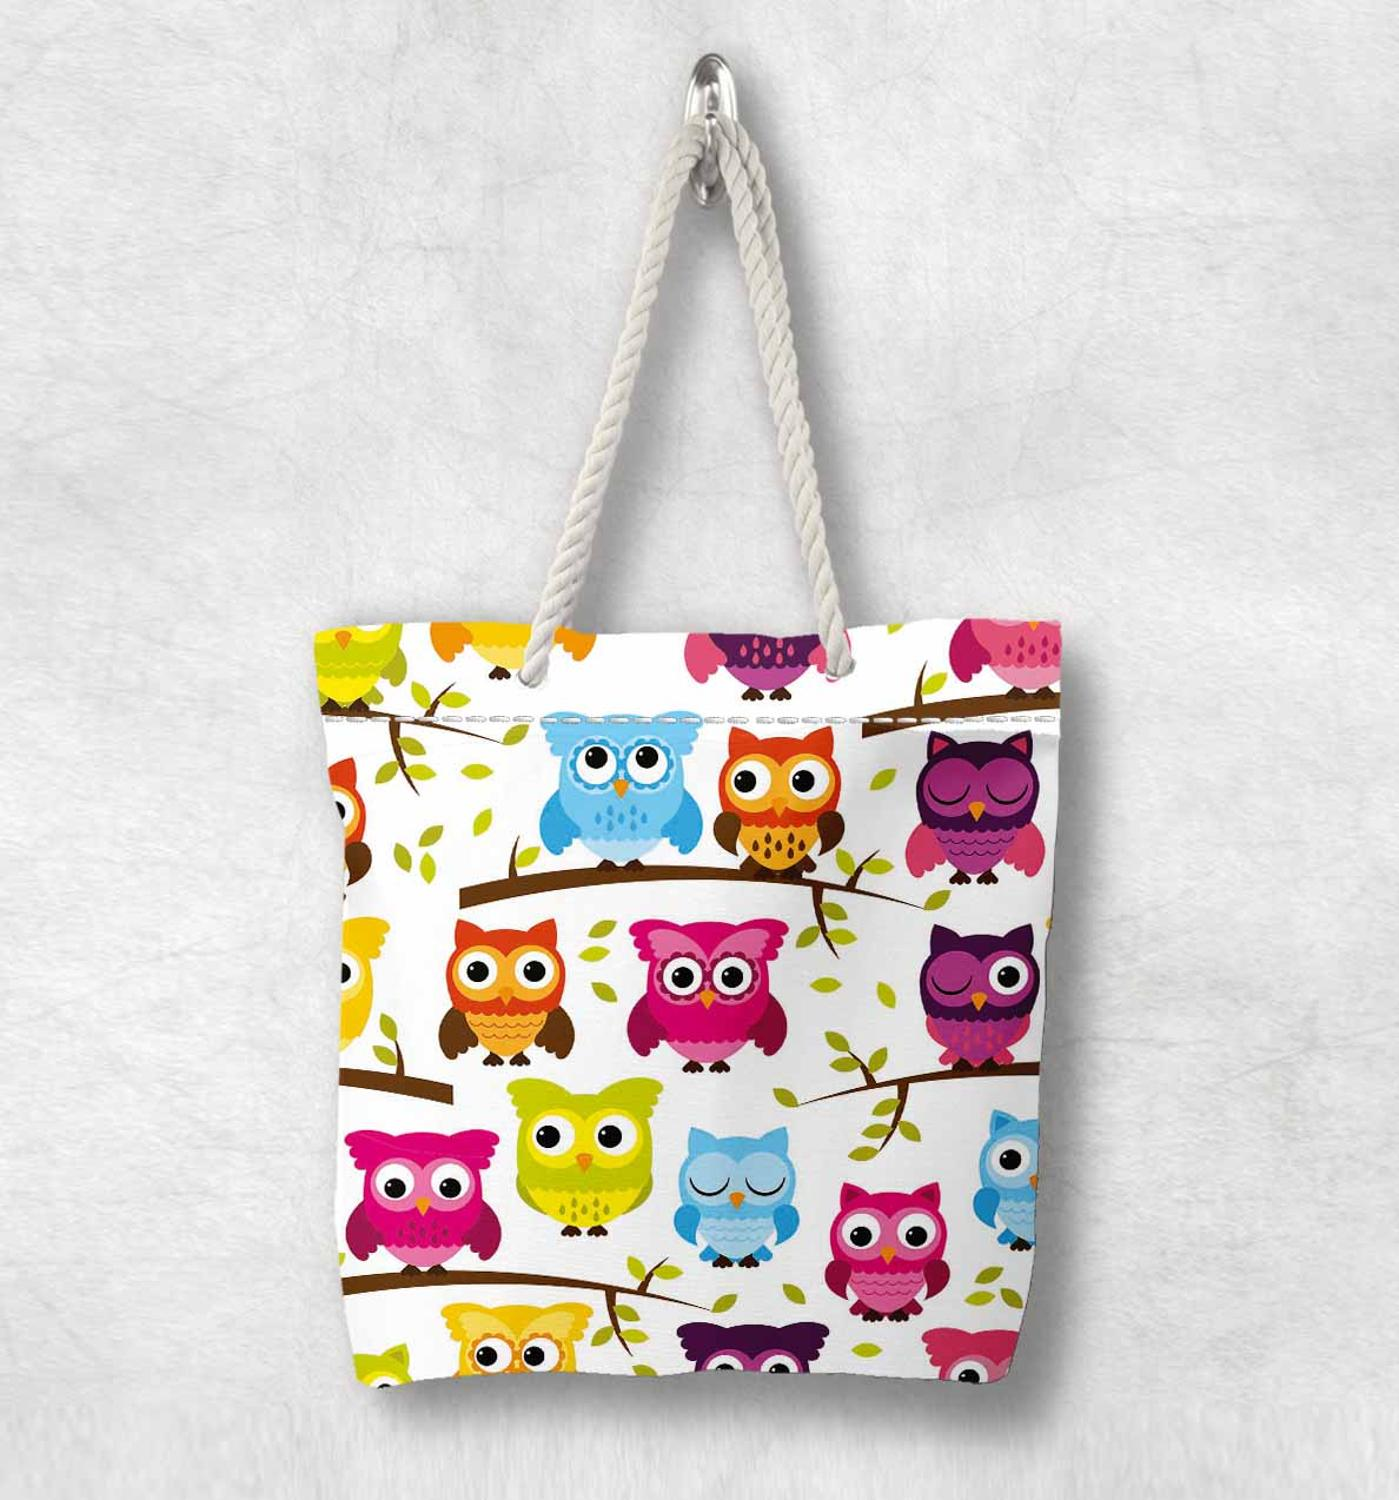 Else Red Blue Orange Yellow Cute Owls  New Fashion White Rope Handle Canvas Bag Cotton Canvas Zippered Tote Bag Shoulder Bag